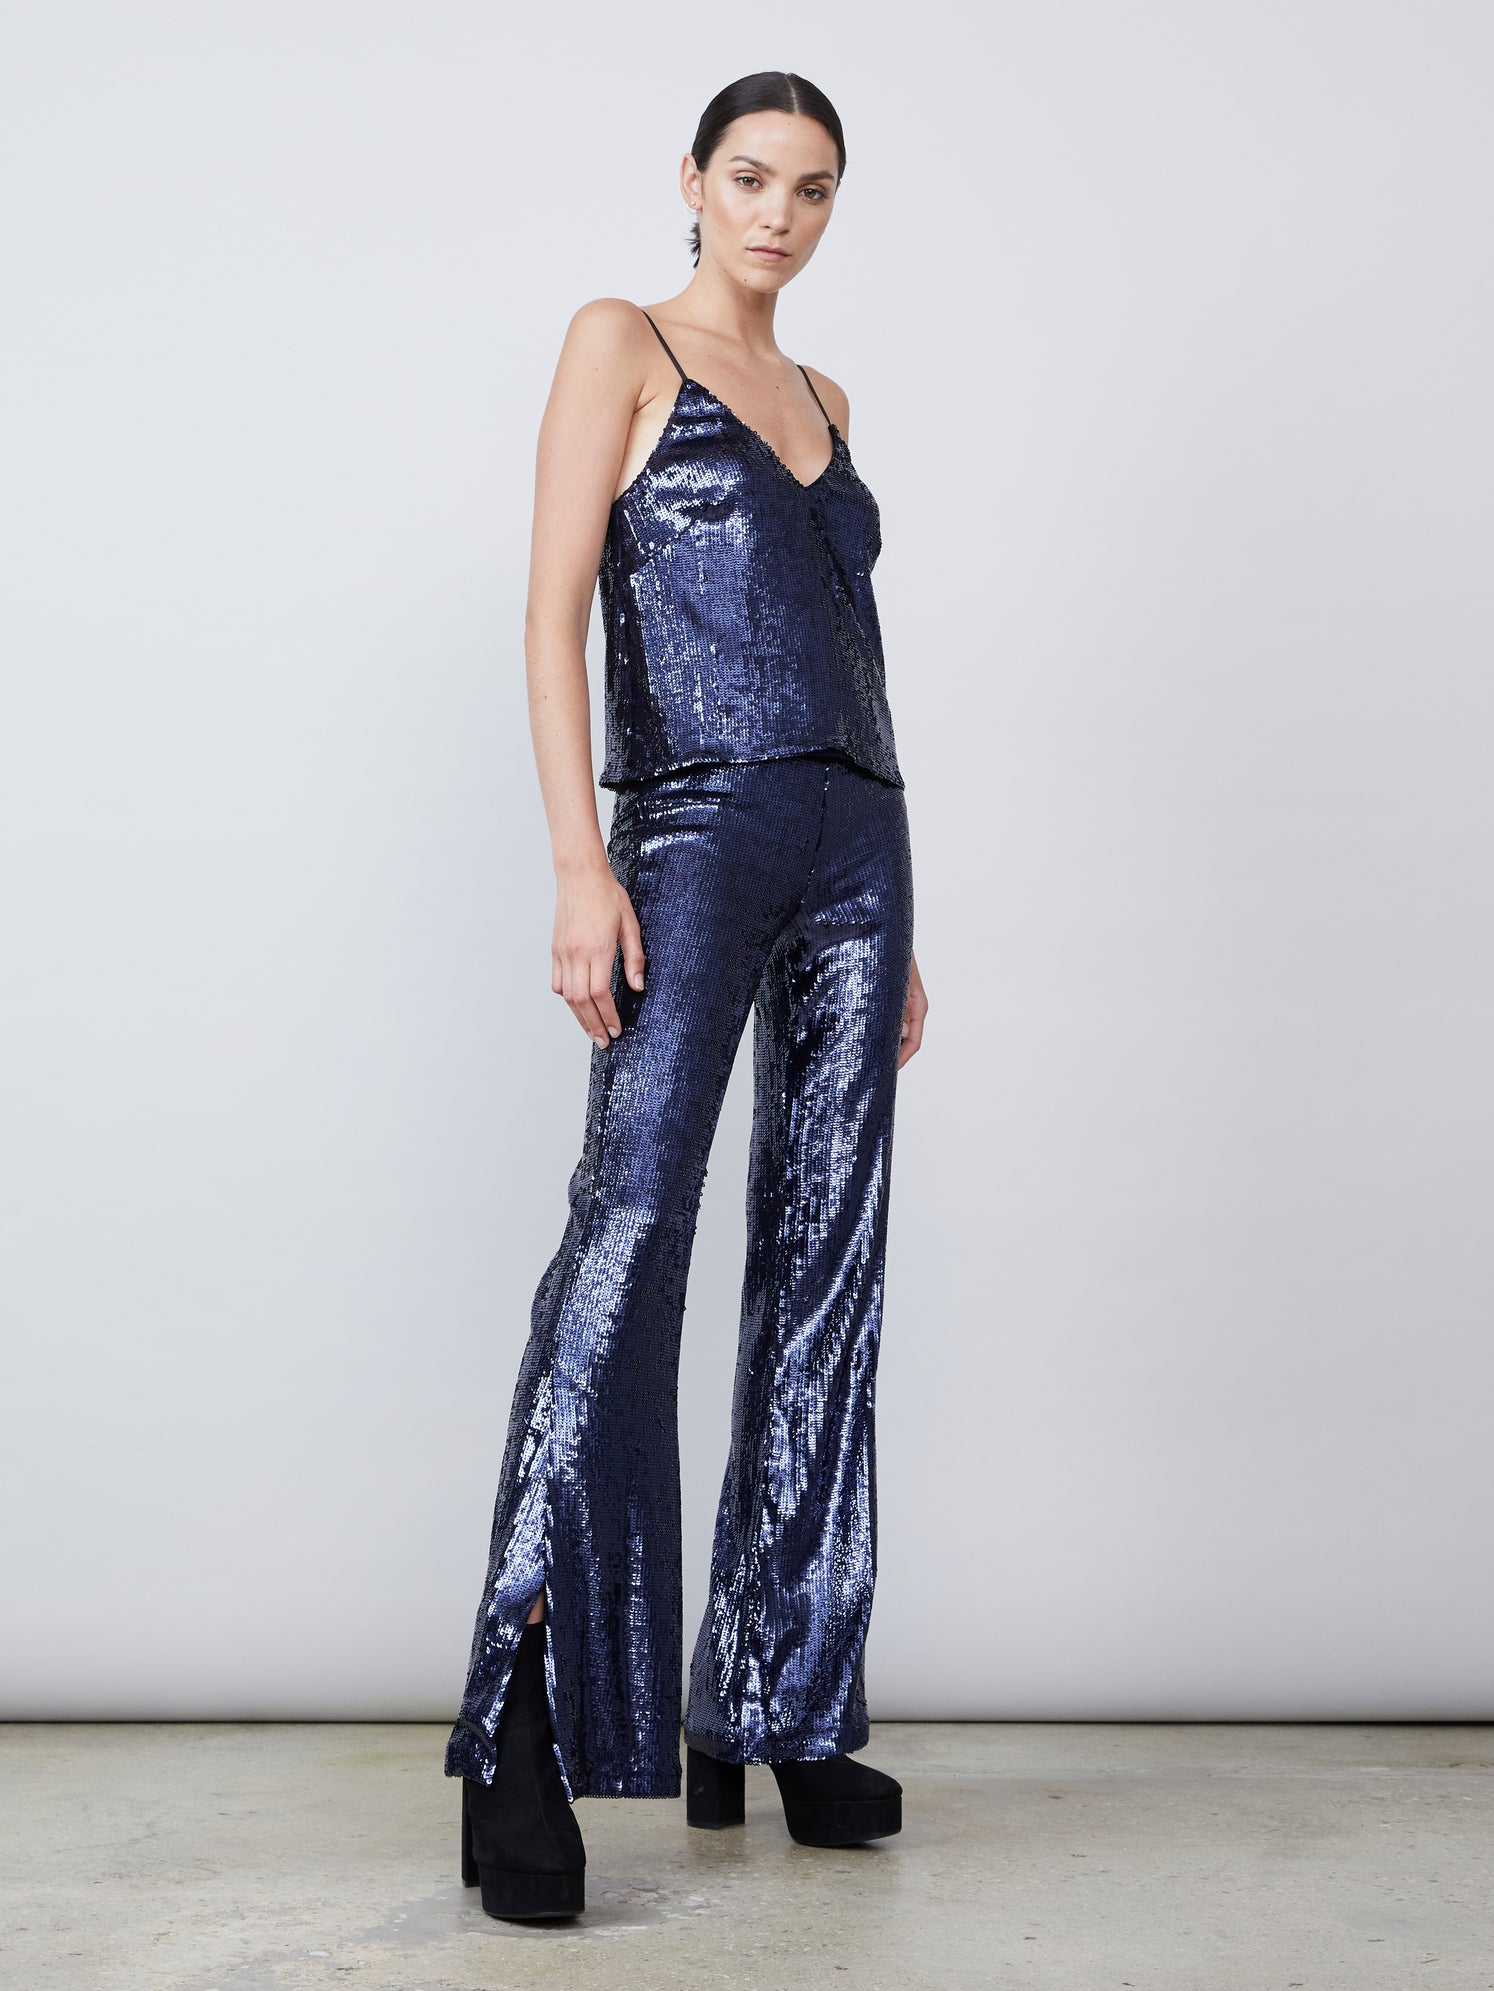 Sequin flared leg pant with exposed side zipper